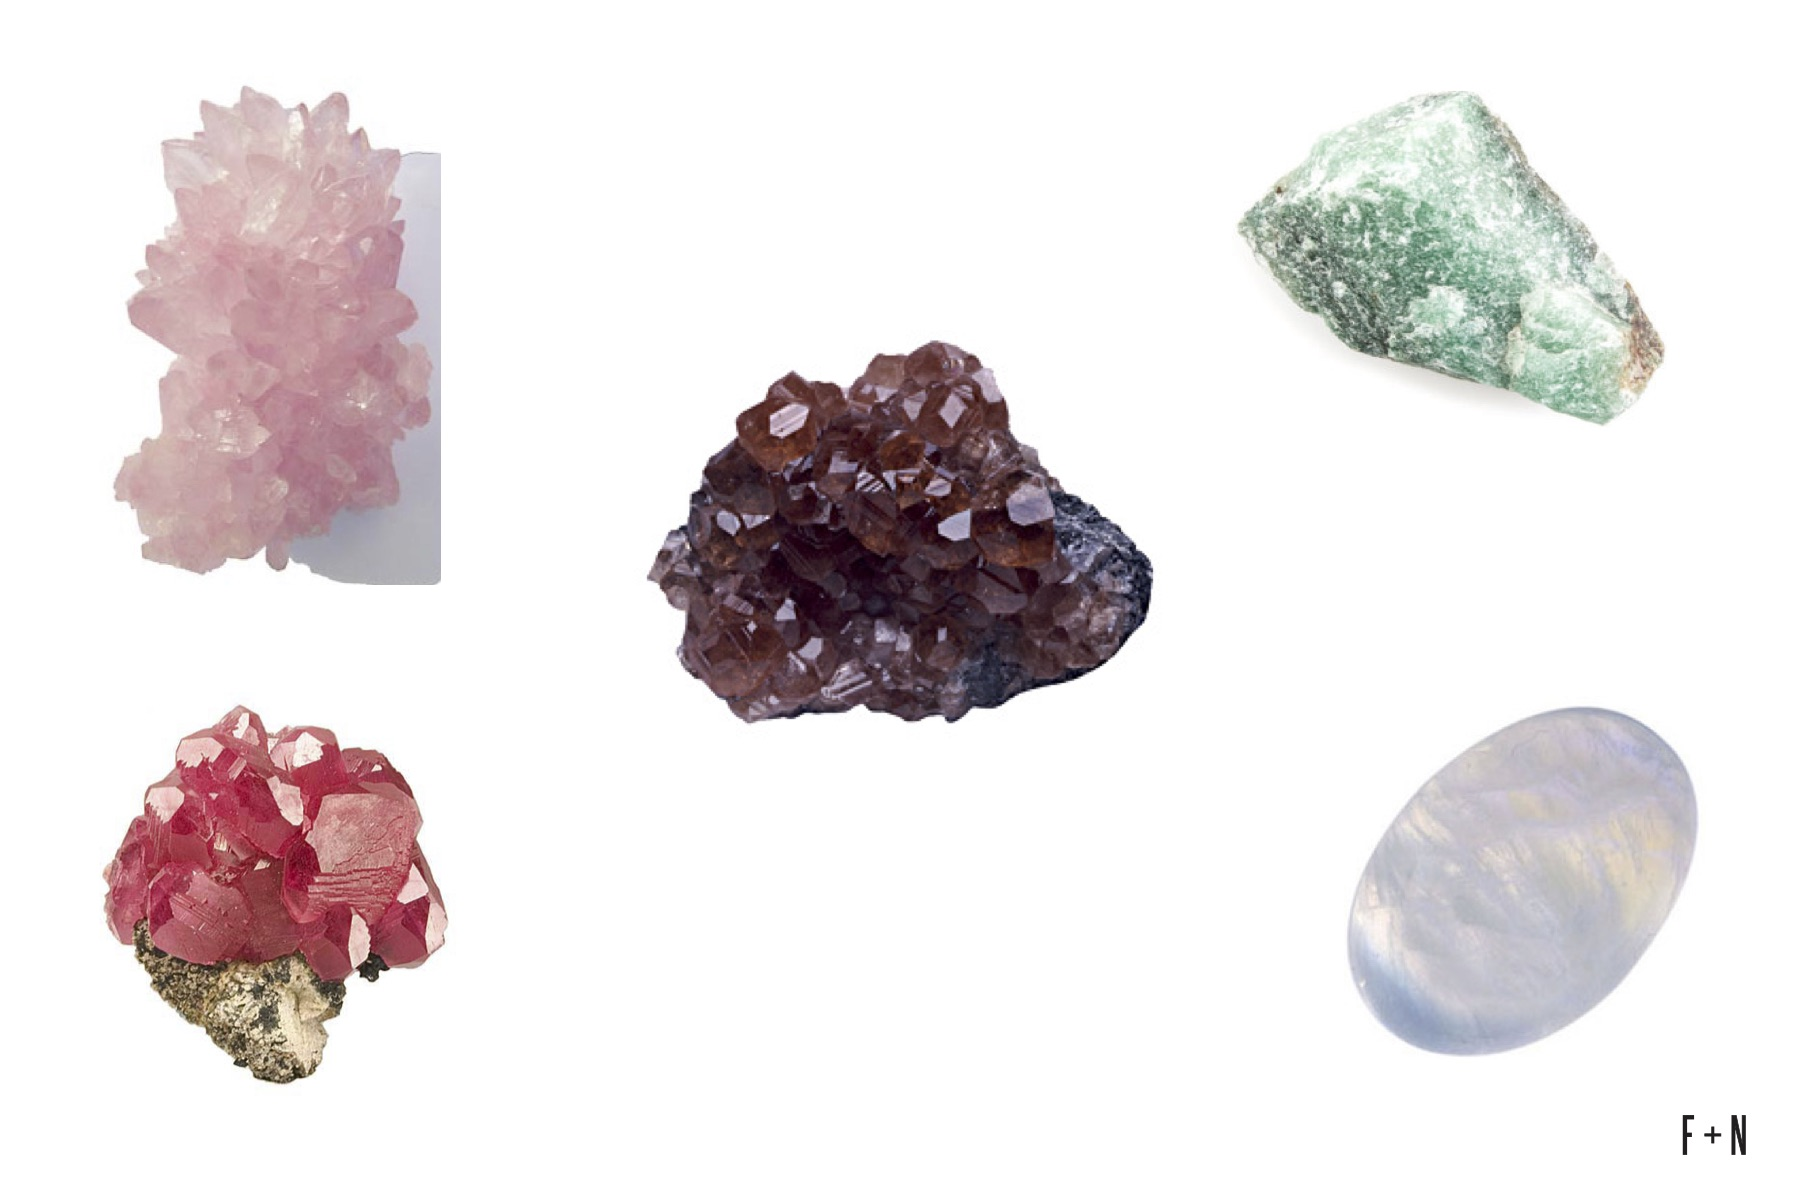 CRYSTAL FREE AND NATIVE GEM REMEDY